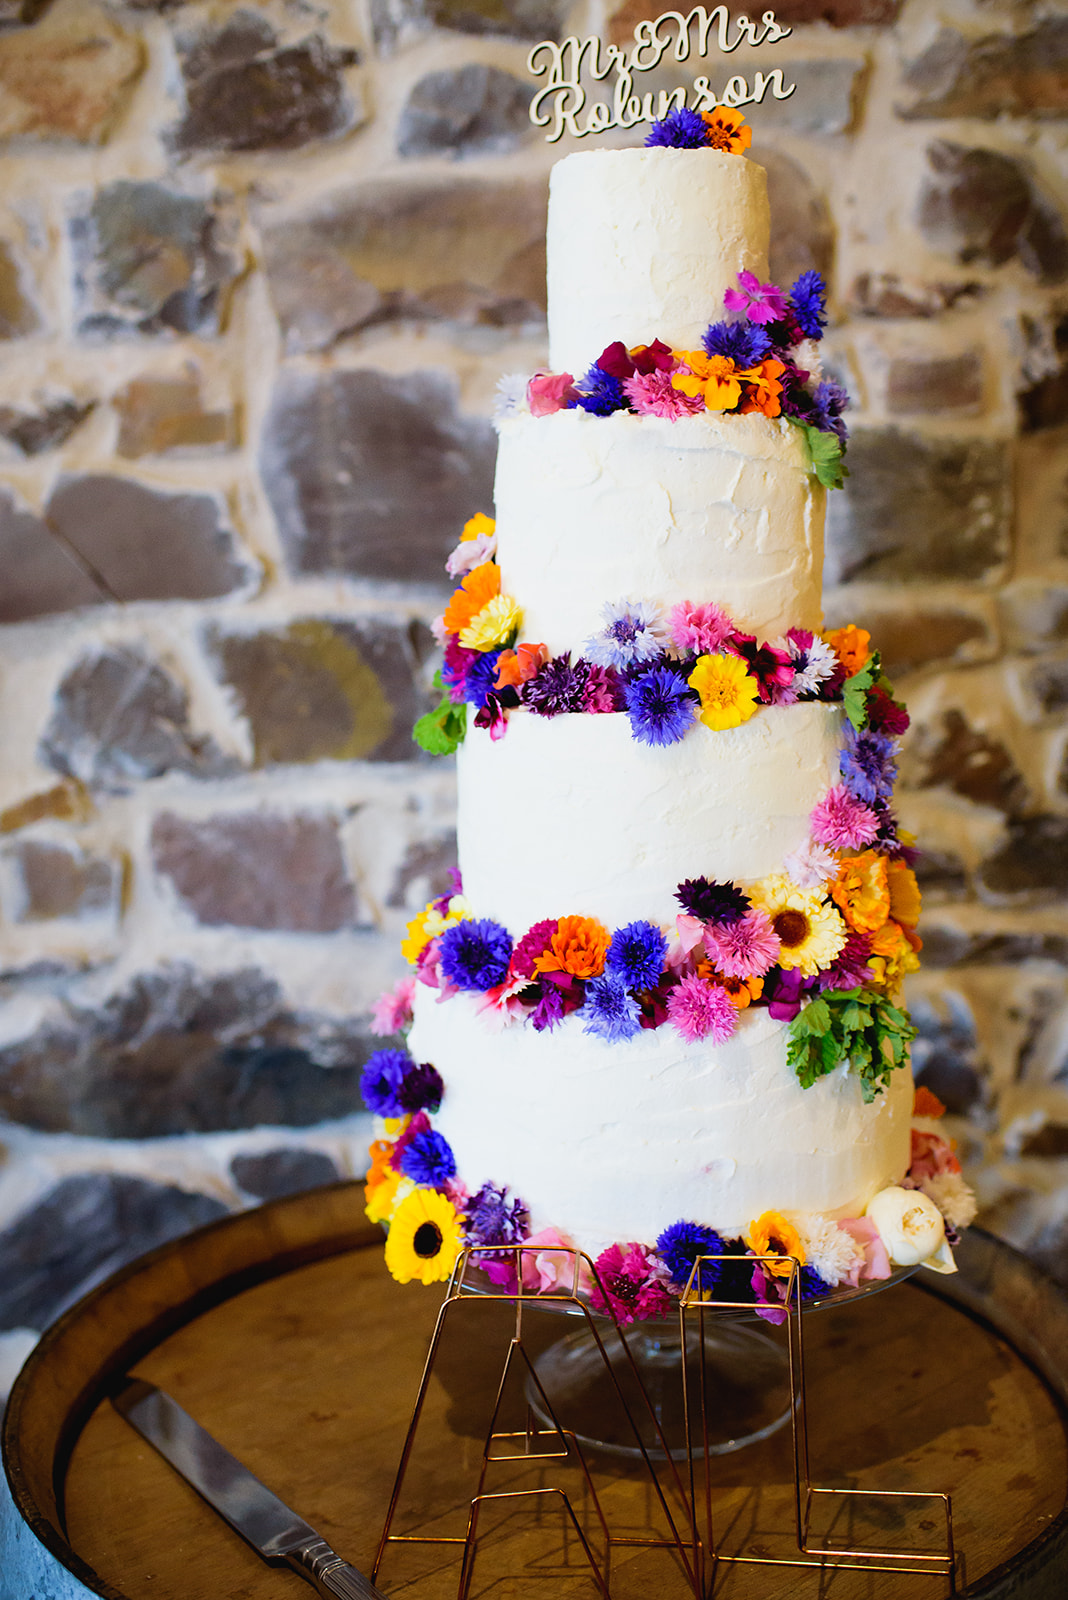 4 teired wedding cake adorned with bright flowers